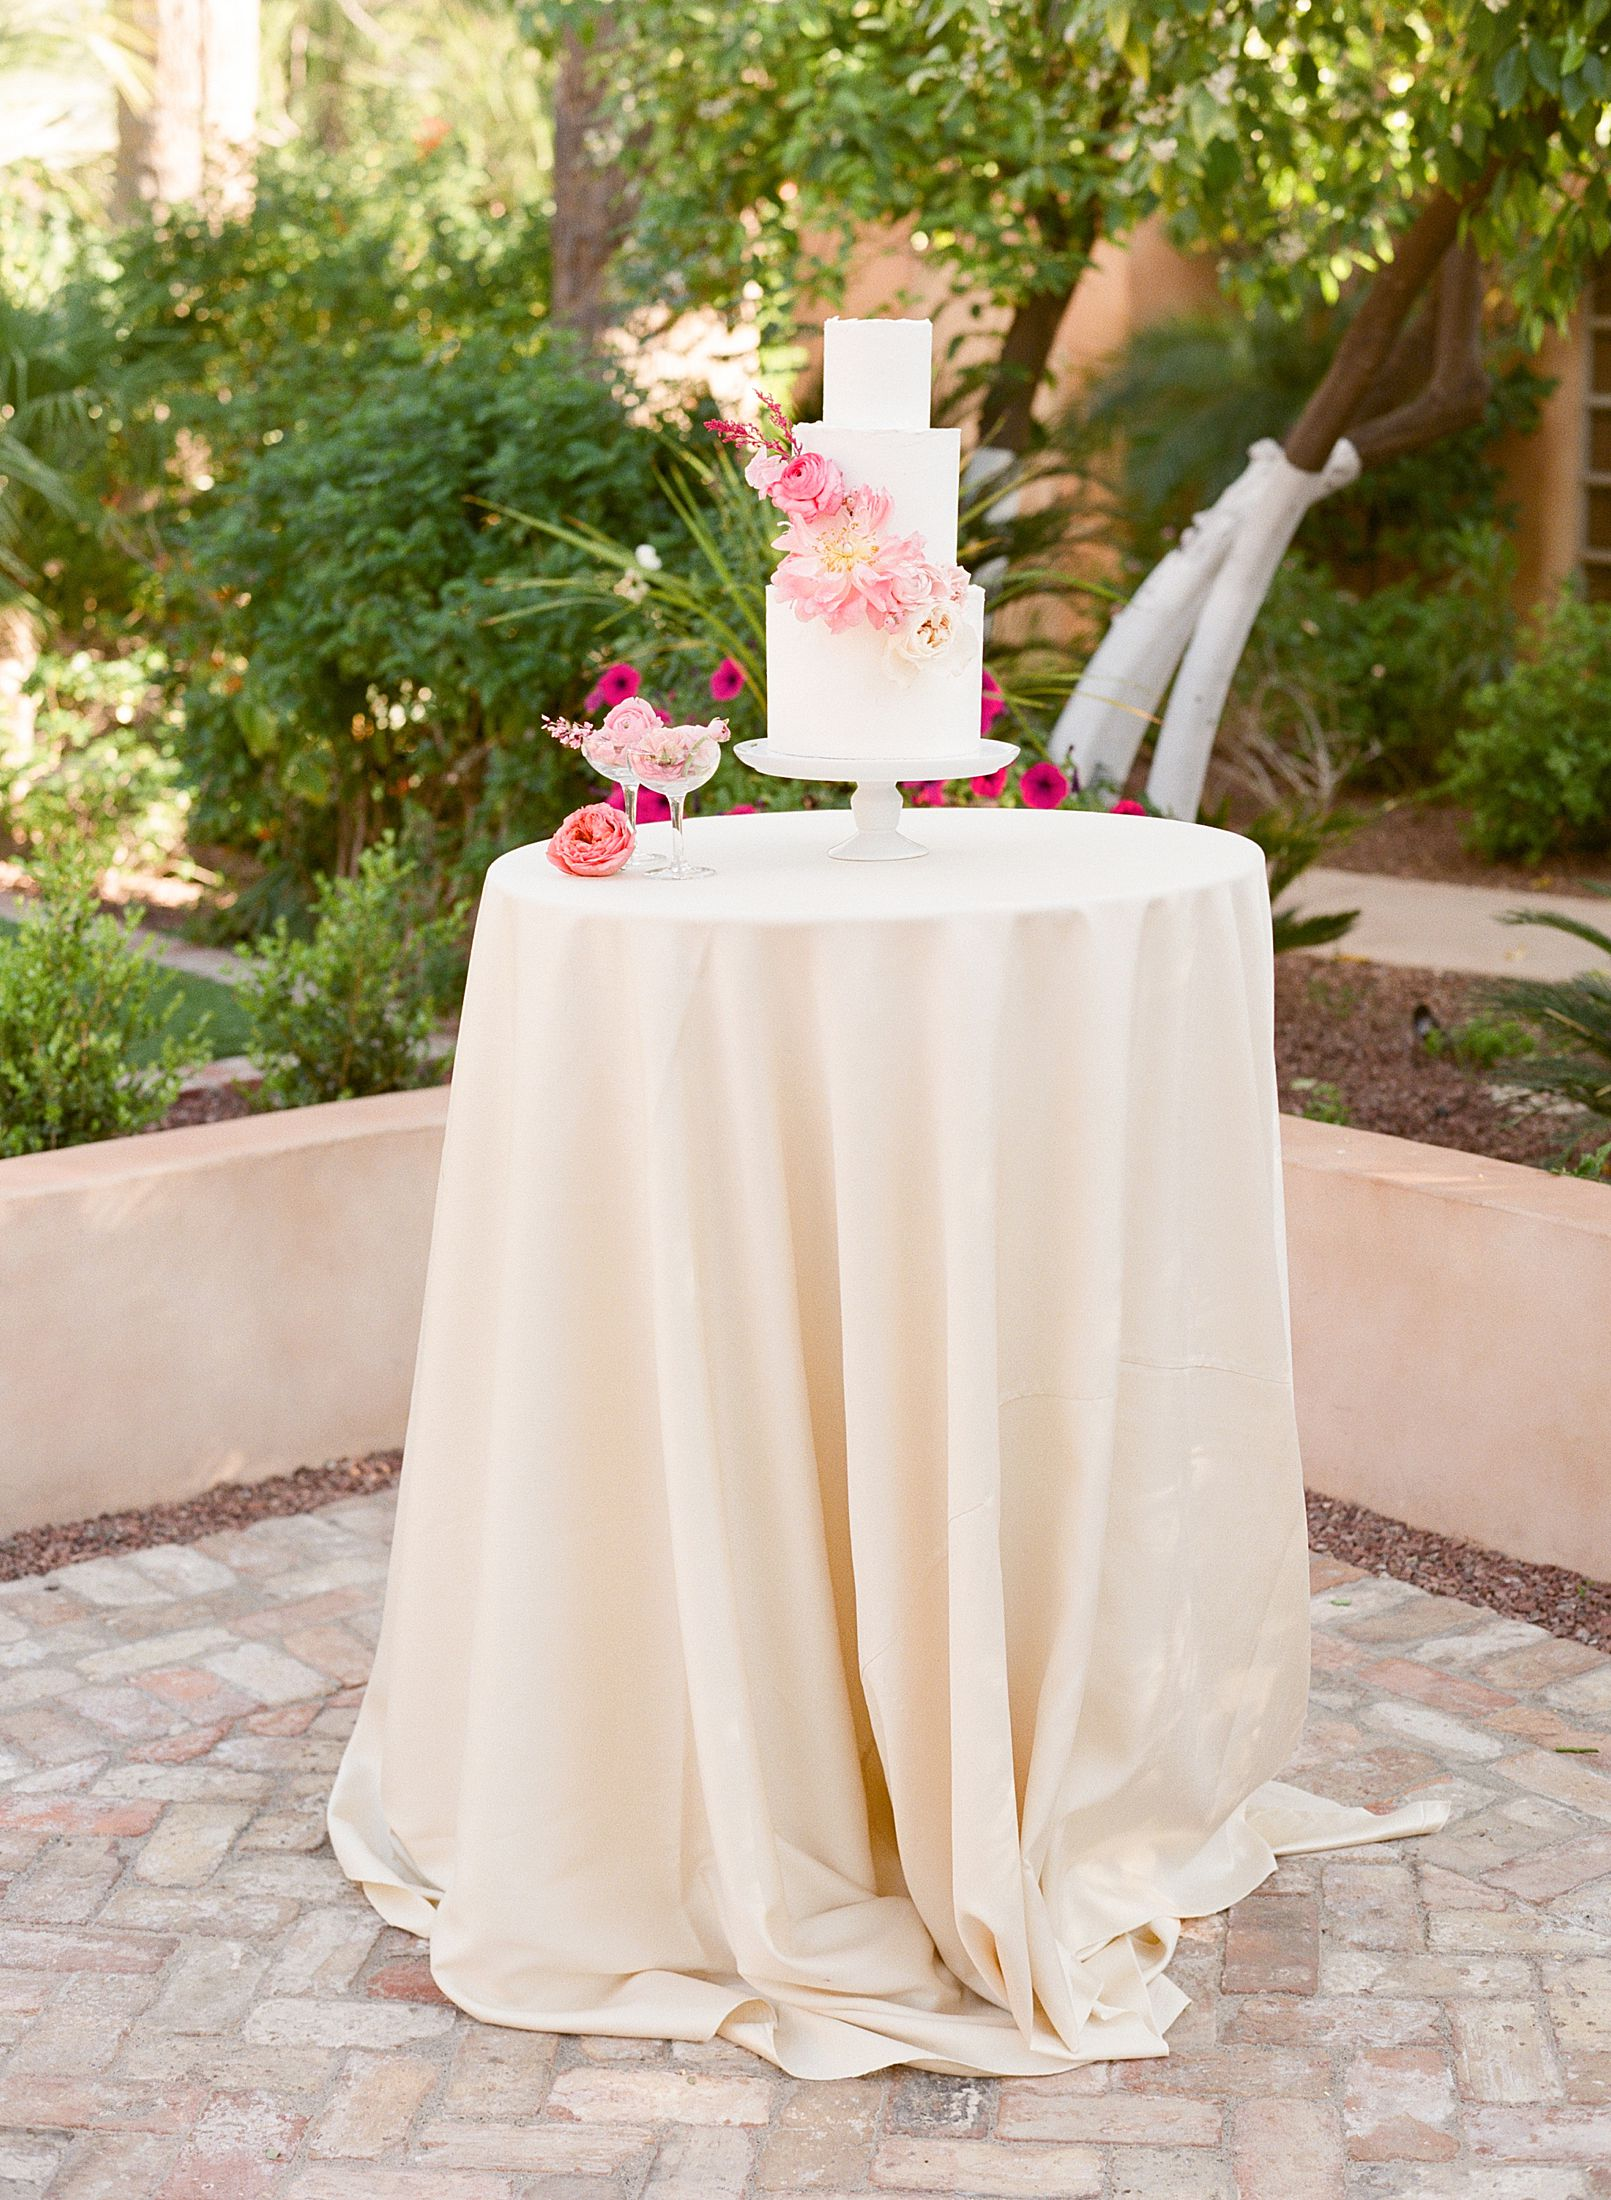 Pink Ombre Wedding Inspiration on Style Me Pretty - Royal Palms Wedding - Scottsdale Wedding - Ashley Baumgartner - Bloom and Blueprint - Wedding Puppies - Bulldog Puppies_0007.jpg